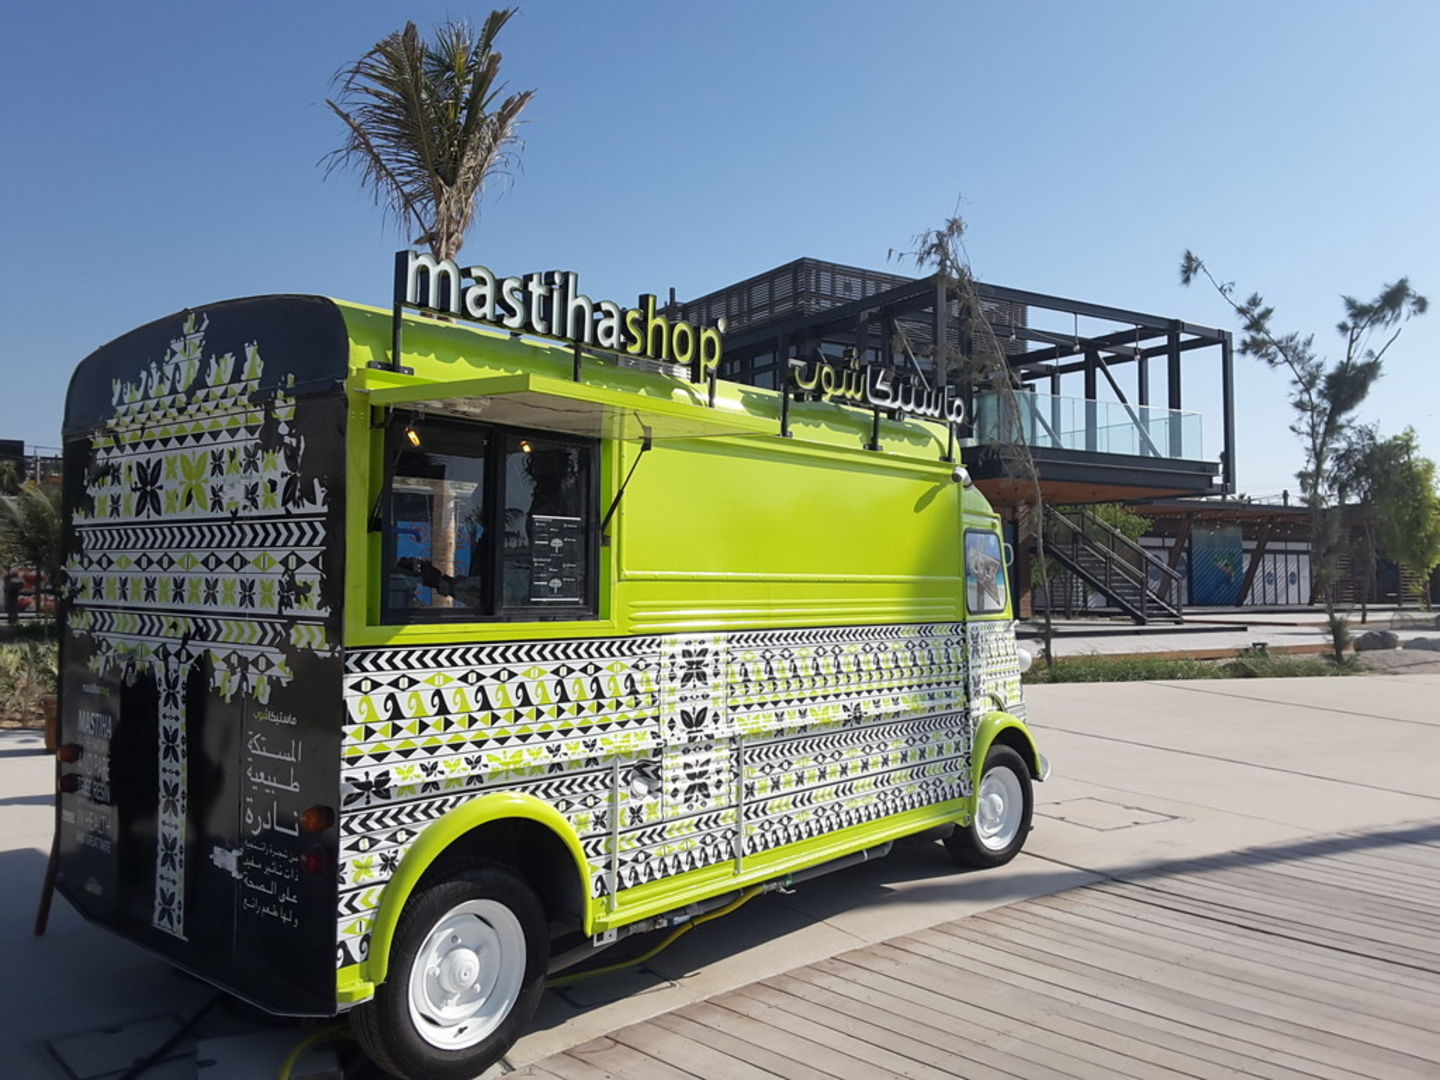 HiDubai-business-mastihashop-foodtruck-food-beverage-coffee-shops-jumeirah-1-dubai-2